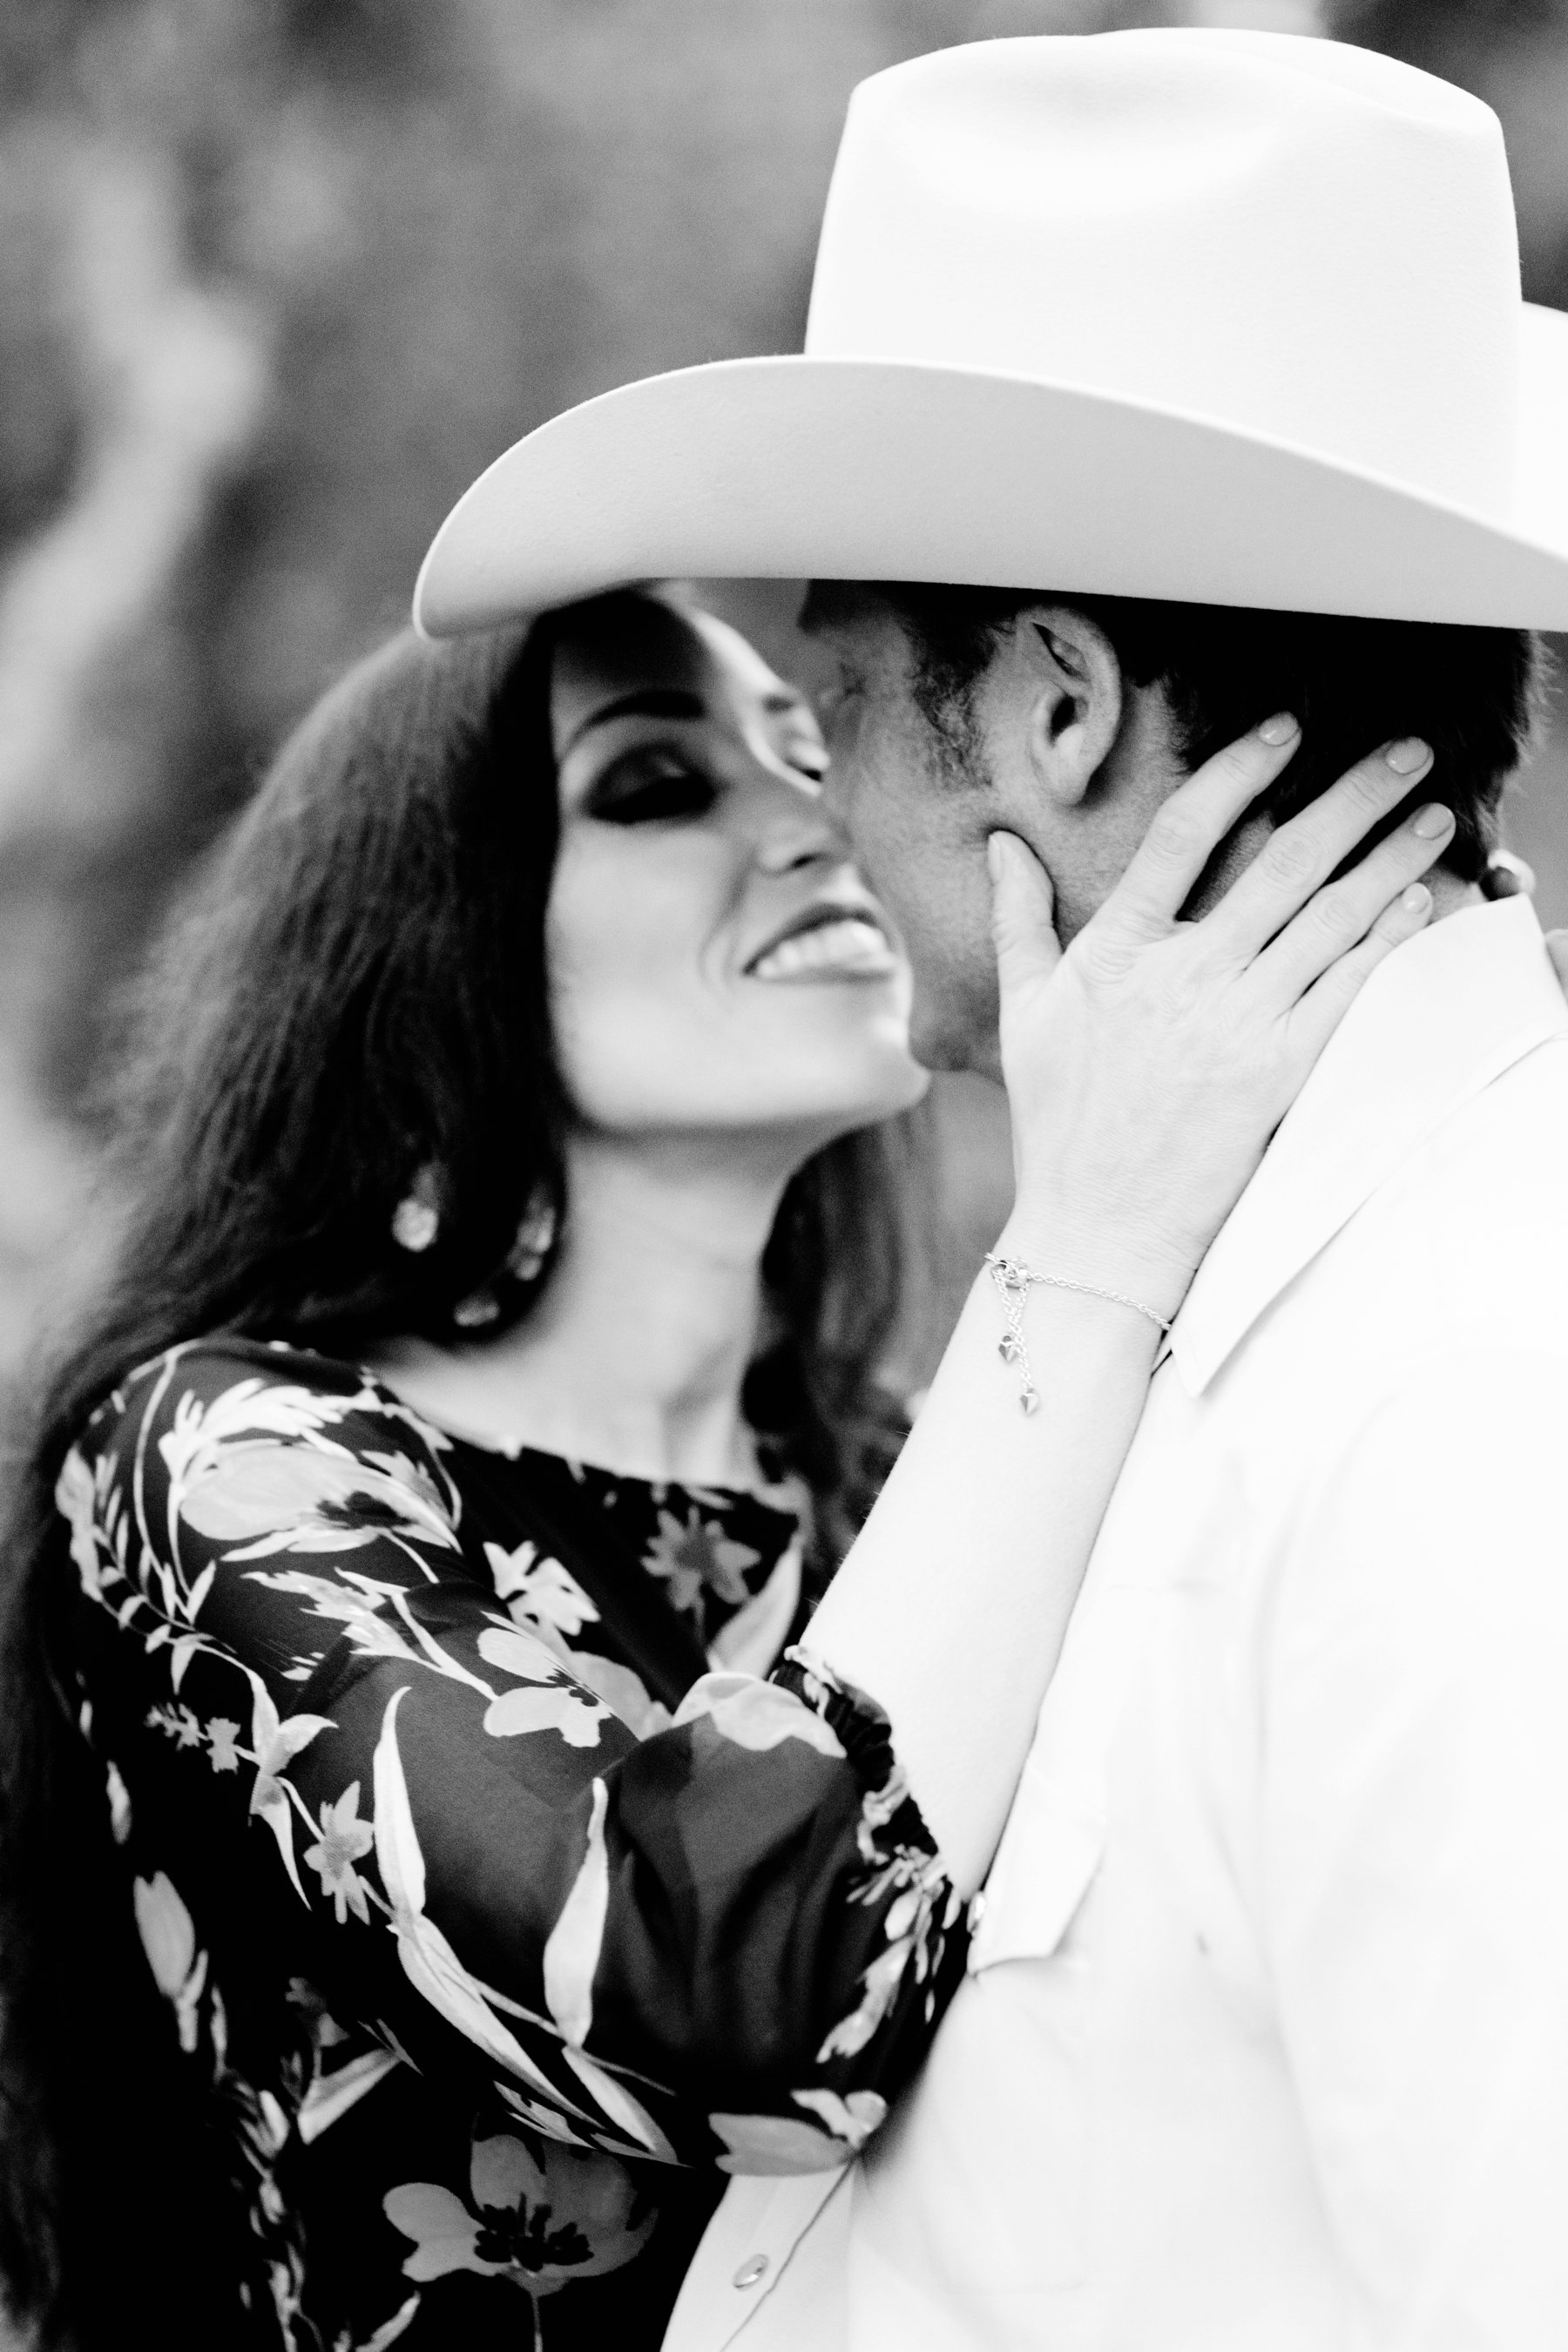 cowboy hat engagement session by the lake and woods in Northern California - Diana Elizabeth photography - www.dianaelizabeth.com